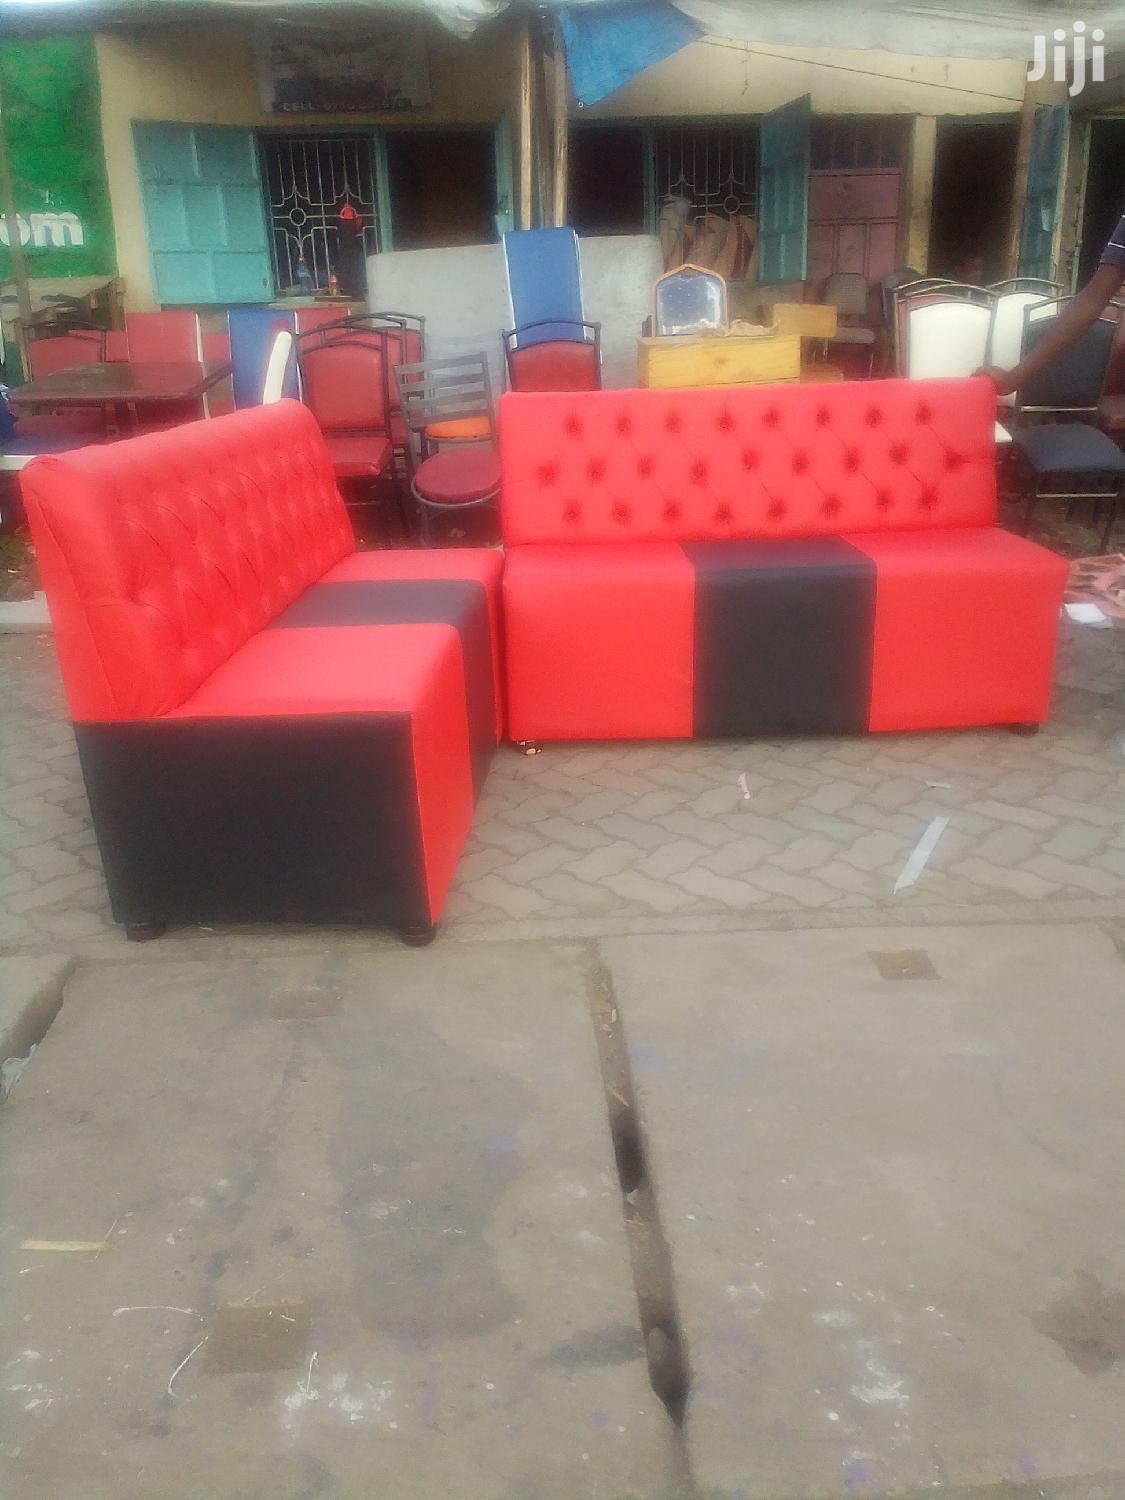 Bar/Restaurant/Hotel Seats | Furniture for sale in Umoja I, Umoja, Kenya